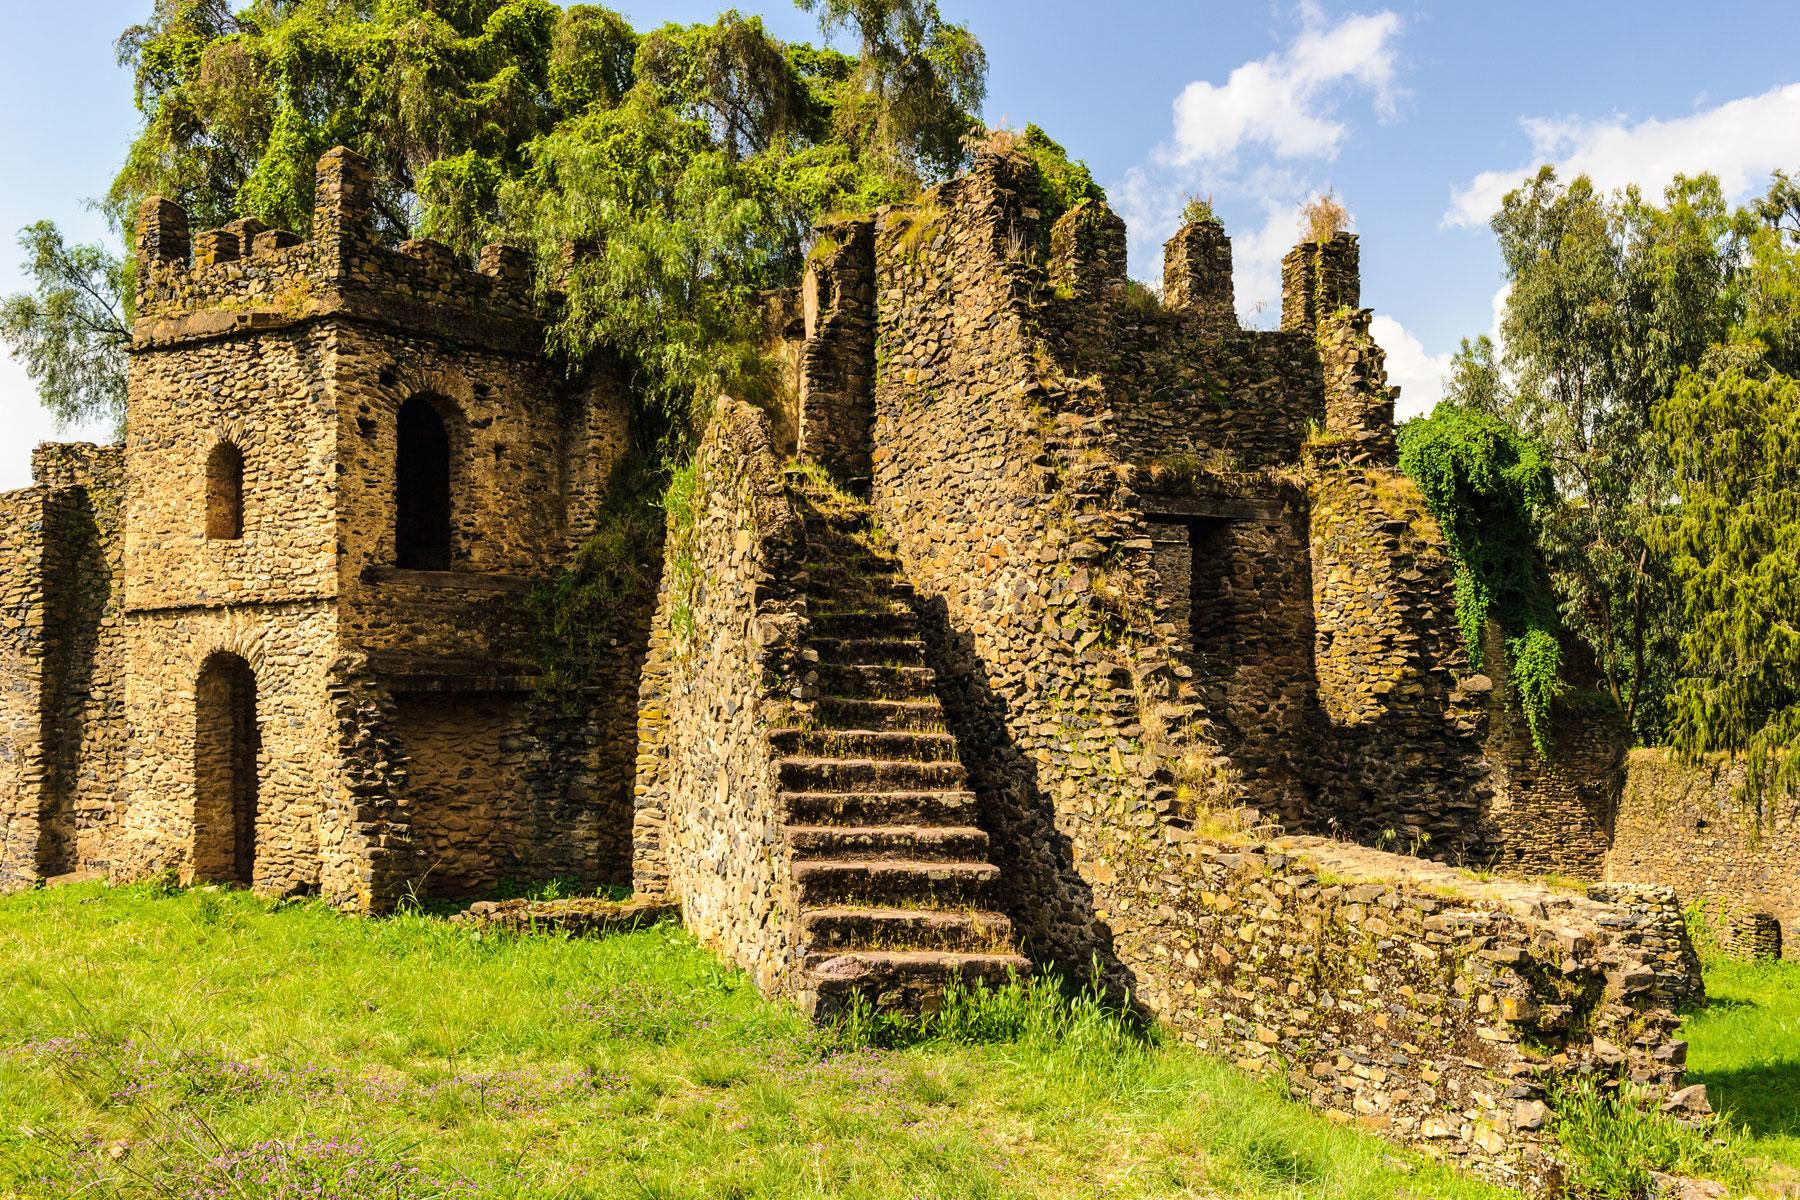 The Medieval Castle You'd Never Expect to Find in Ethiopia